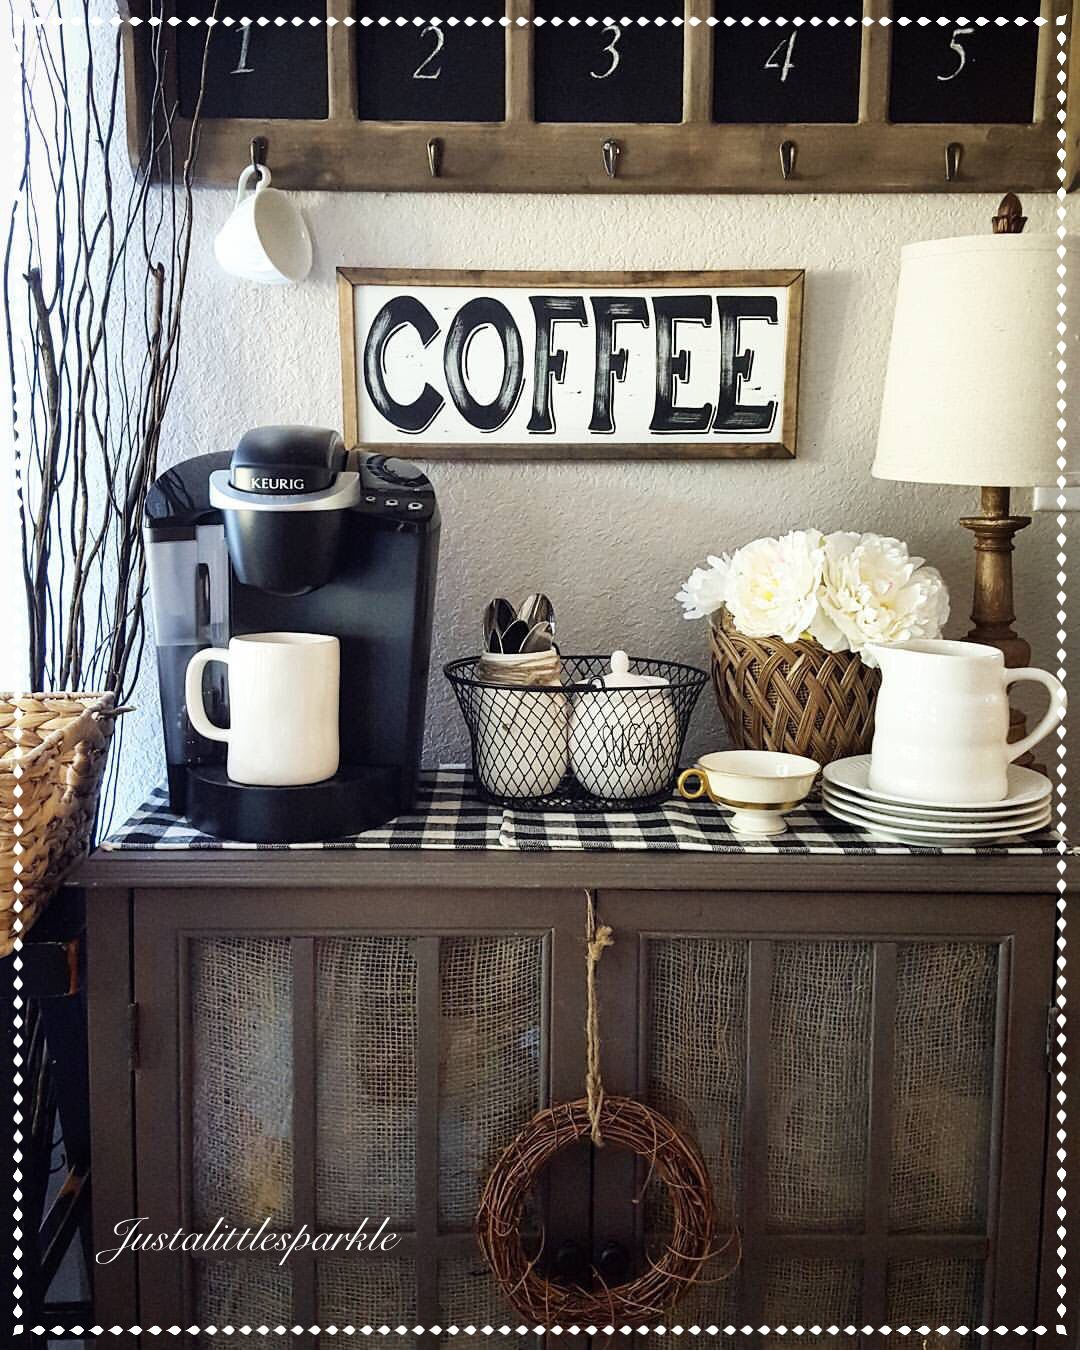 Home Design Business Ideas: 25+ DIY Coffee Bar Ideas For Your Home (Stunning Pictures